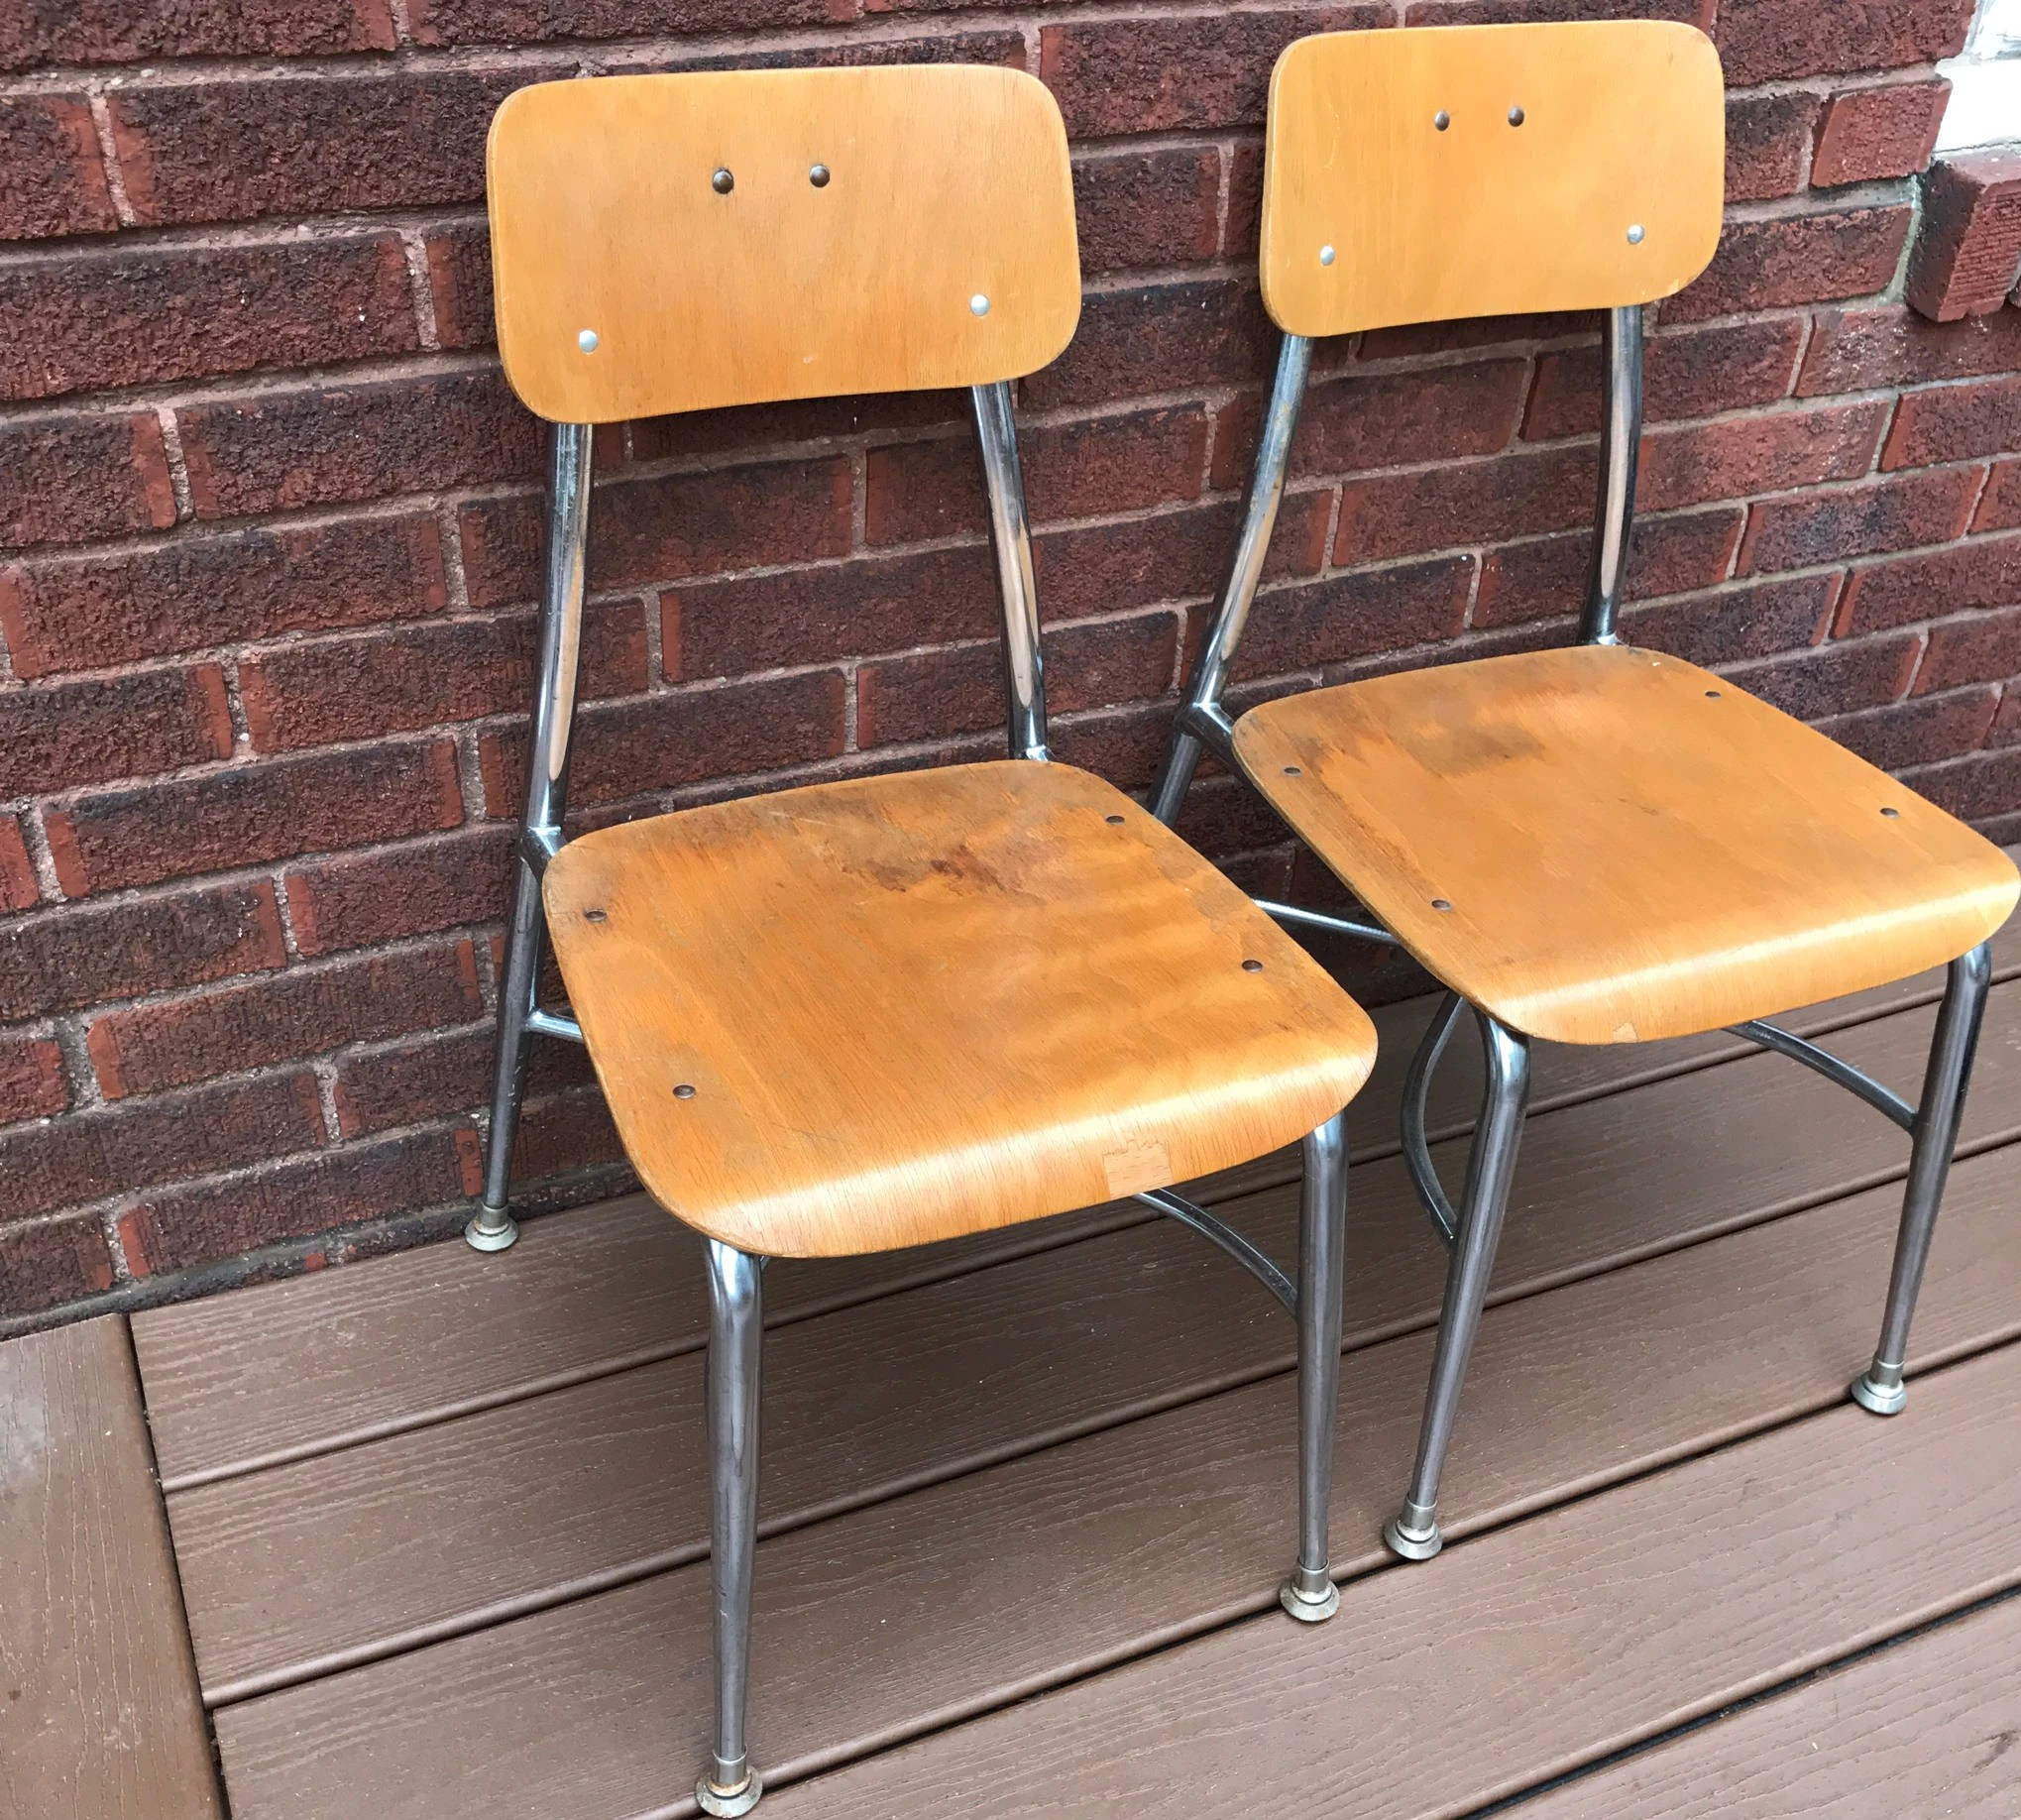 Vintage School Chairs Vintage Wood Metal School Chairs Heywood Wakefield Chairs Mid Century 13